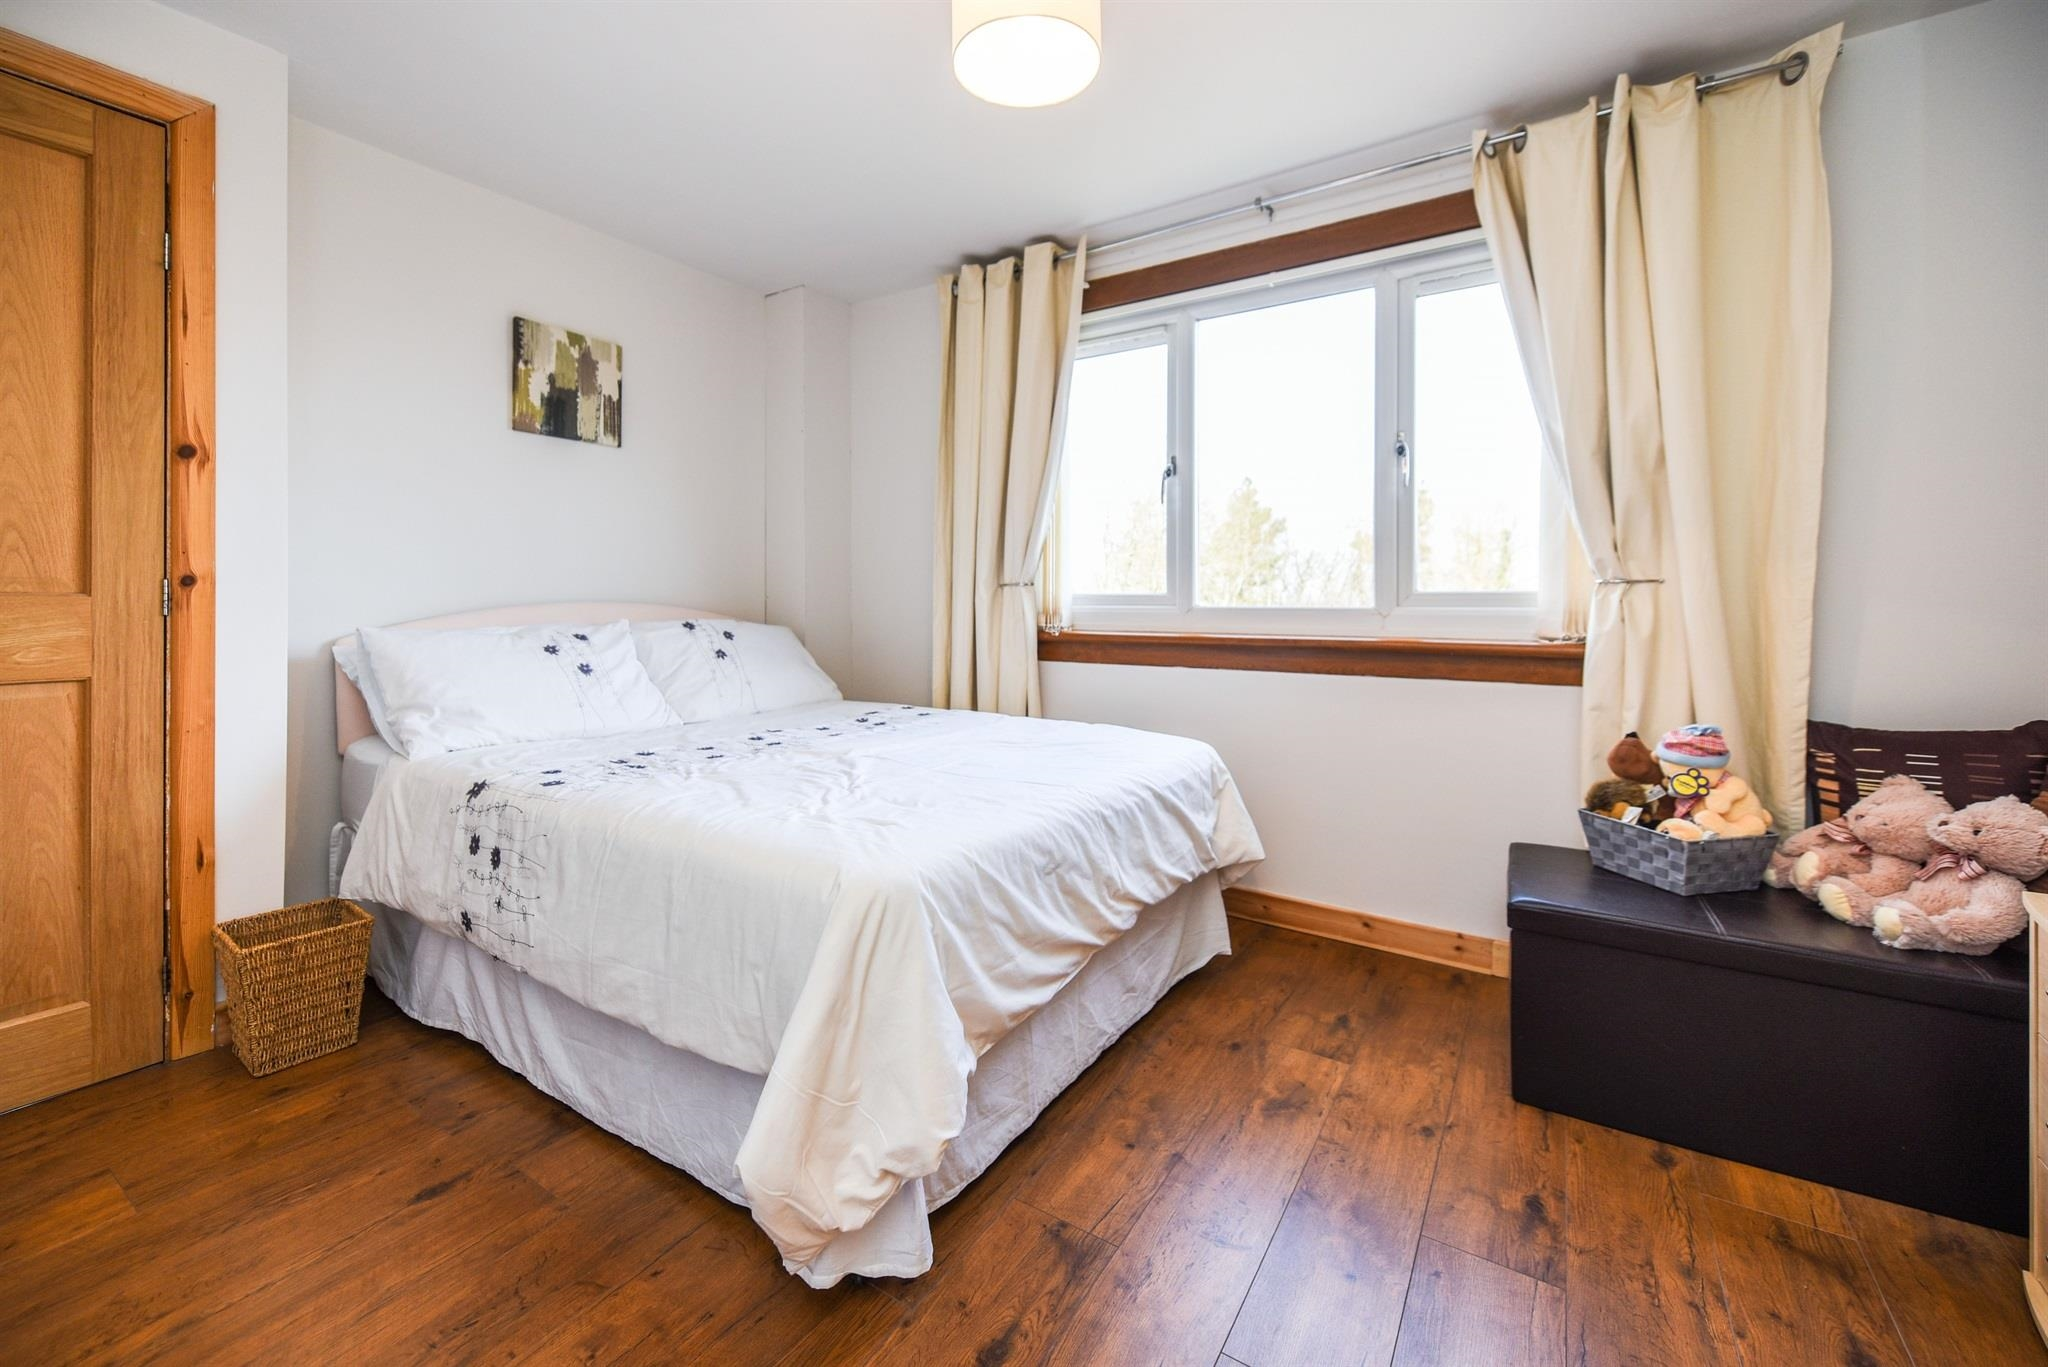 3 bedroom house for sale foxbar crescent paisley pa2 0rf for Paisley house